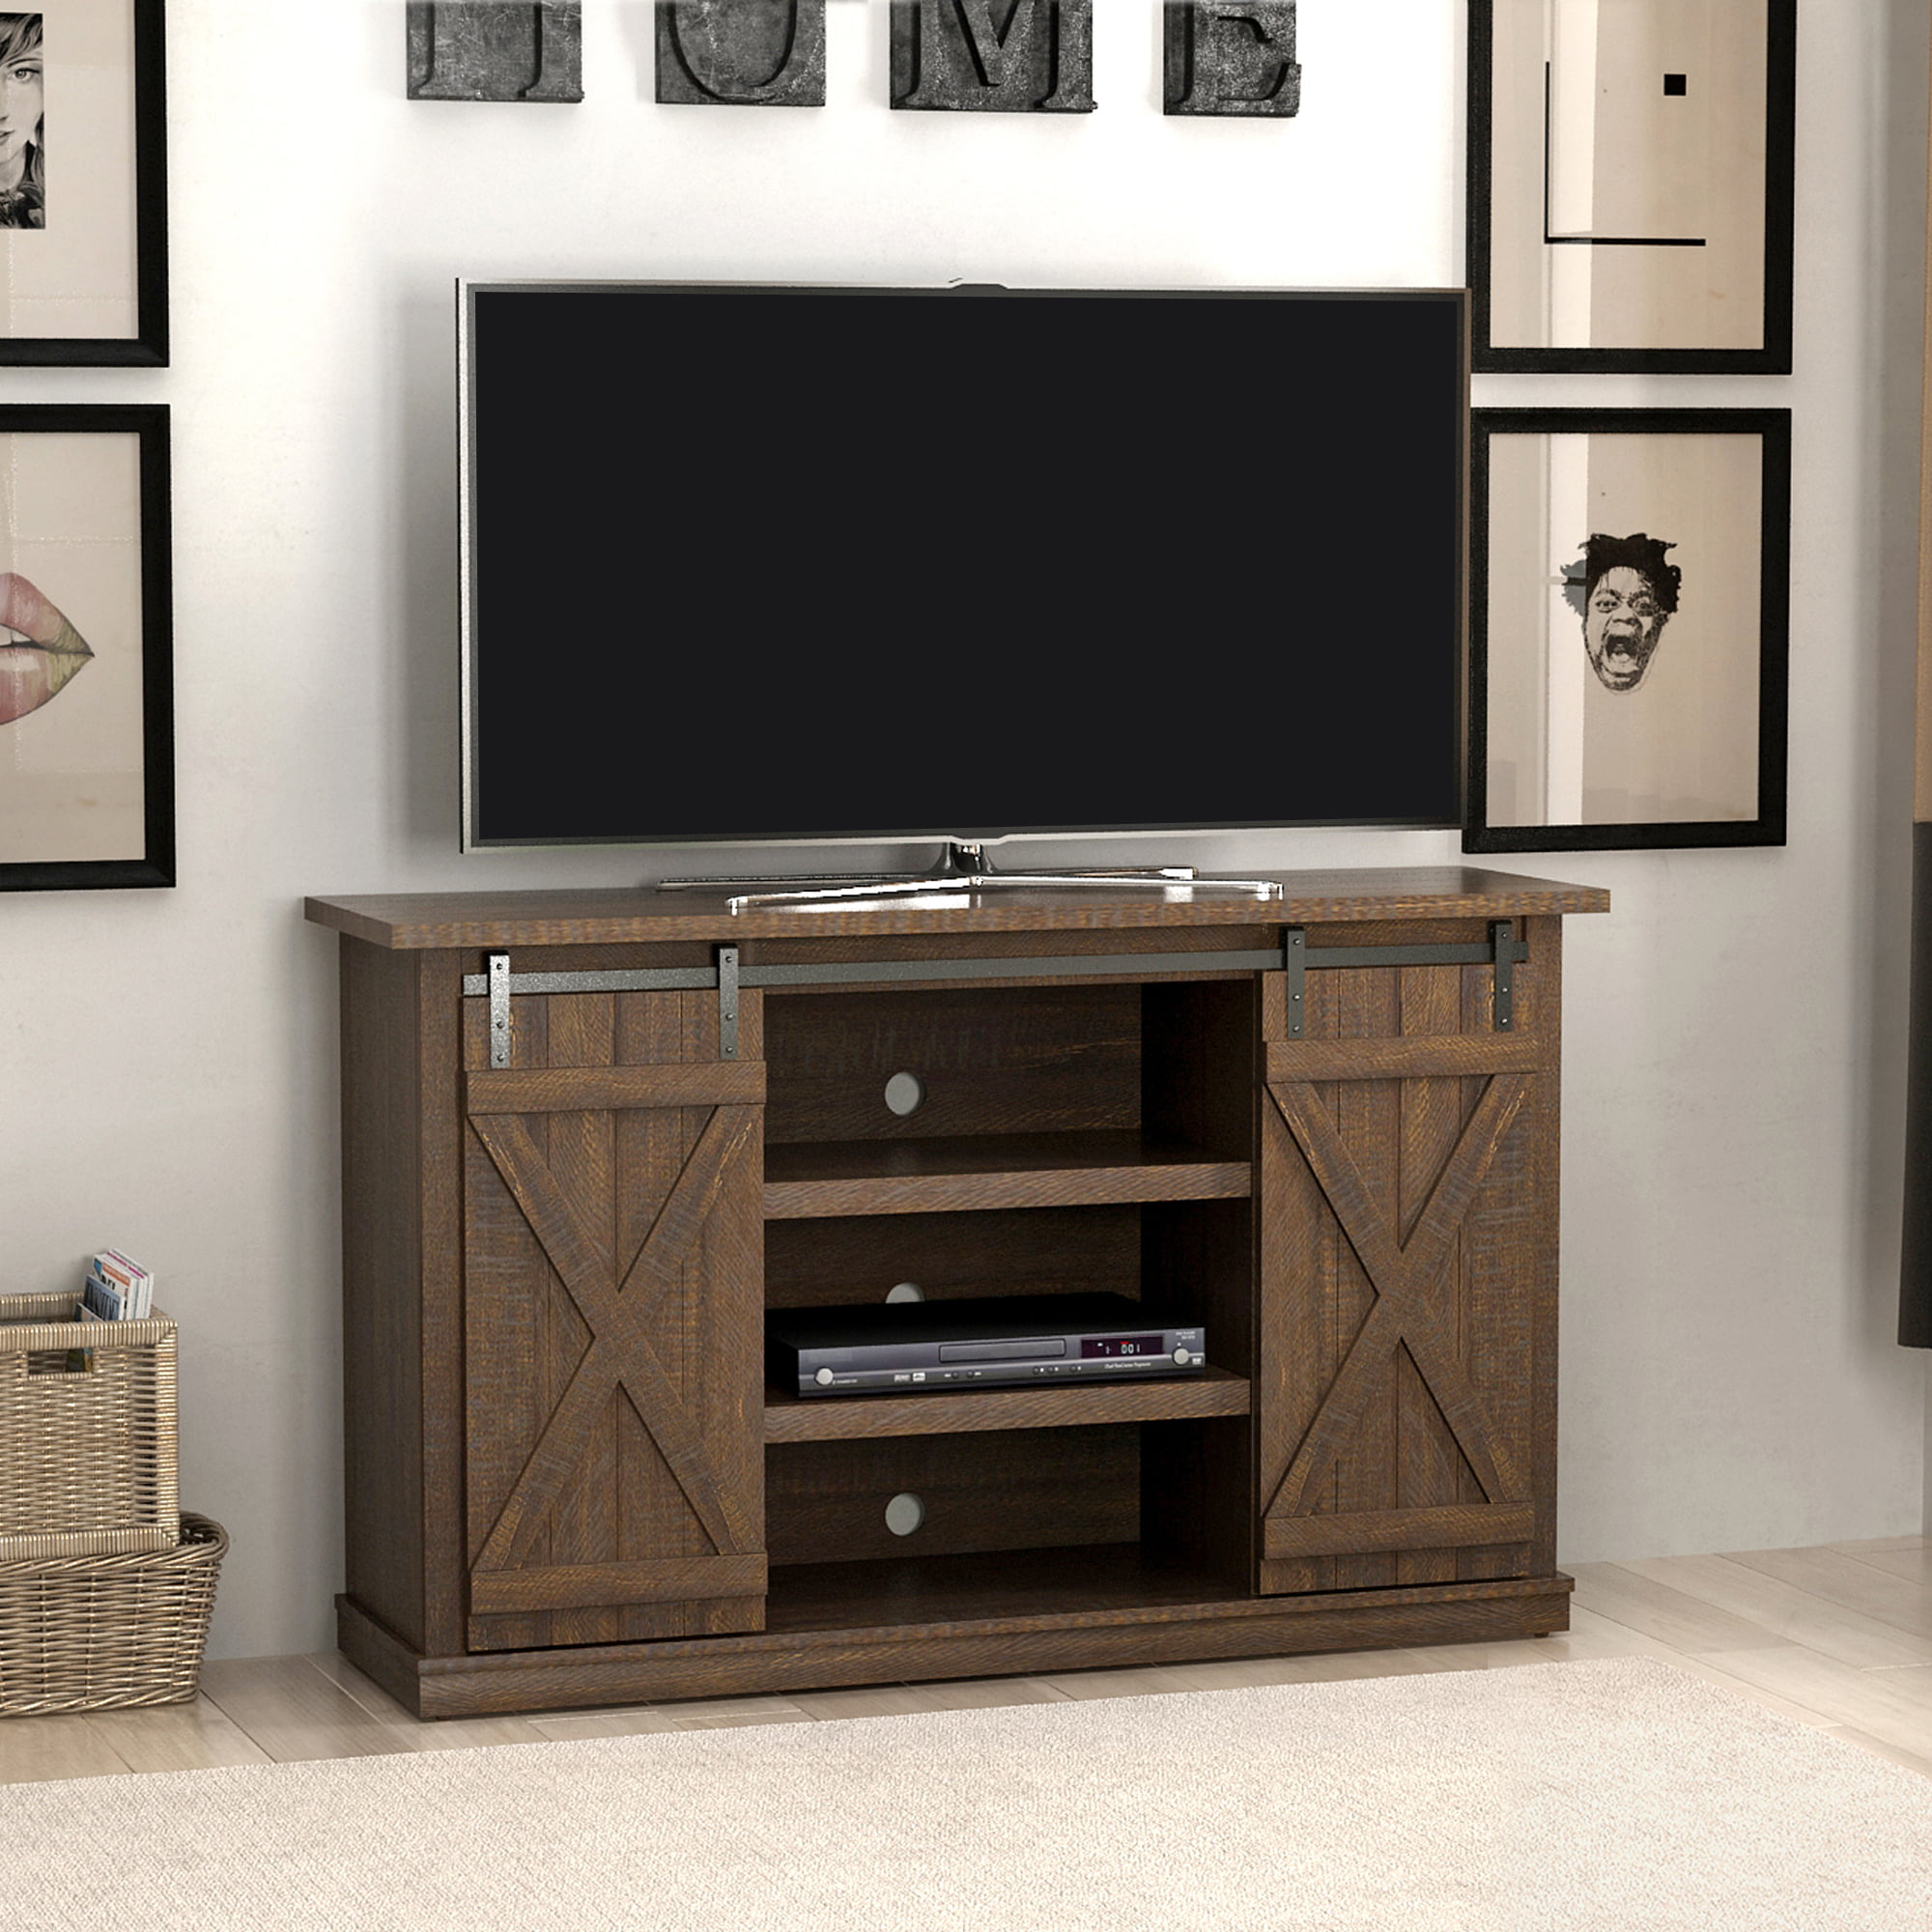 Tv stands walmart for tvs 50 to 60 sciox Image collections